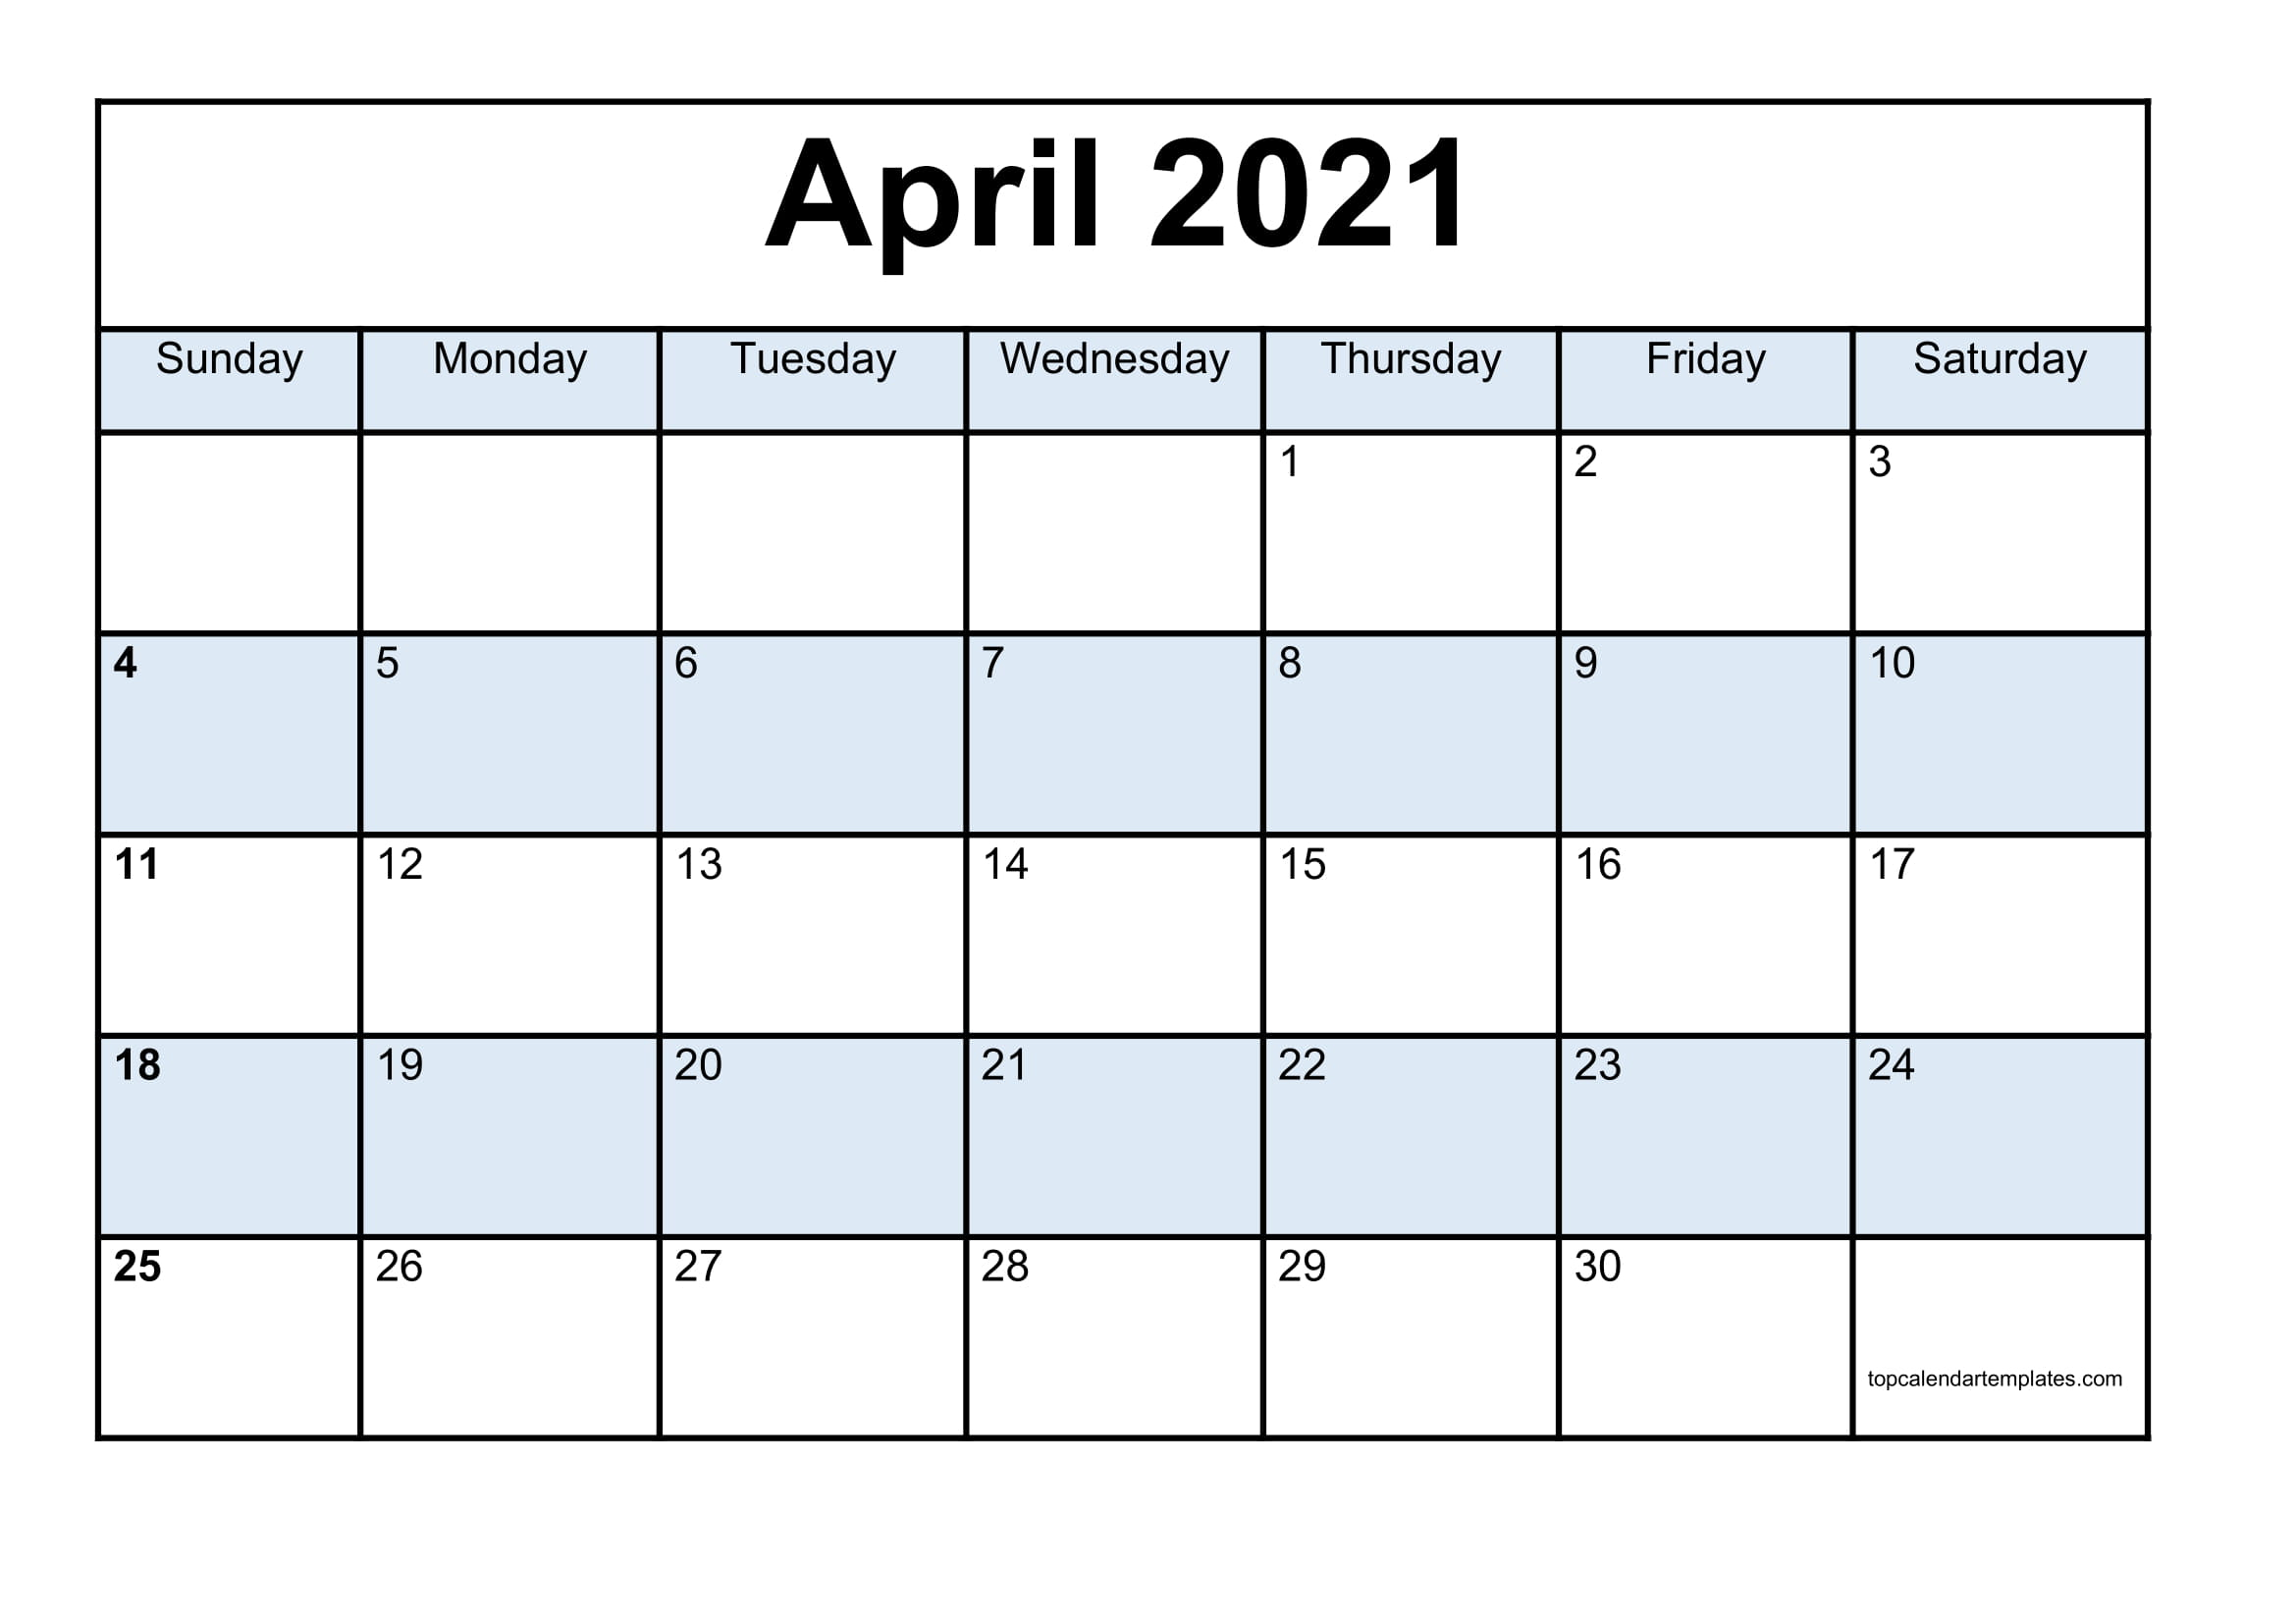 Blank April 2021 Calendar Template  Monthly Planner within Blank Printable Calendars 3 Month 2021